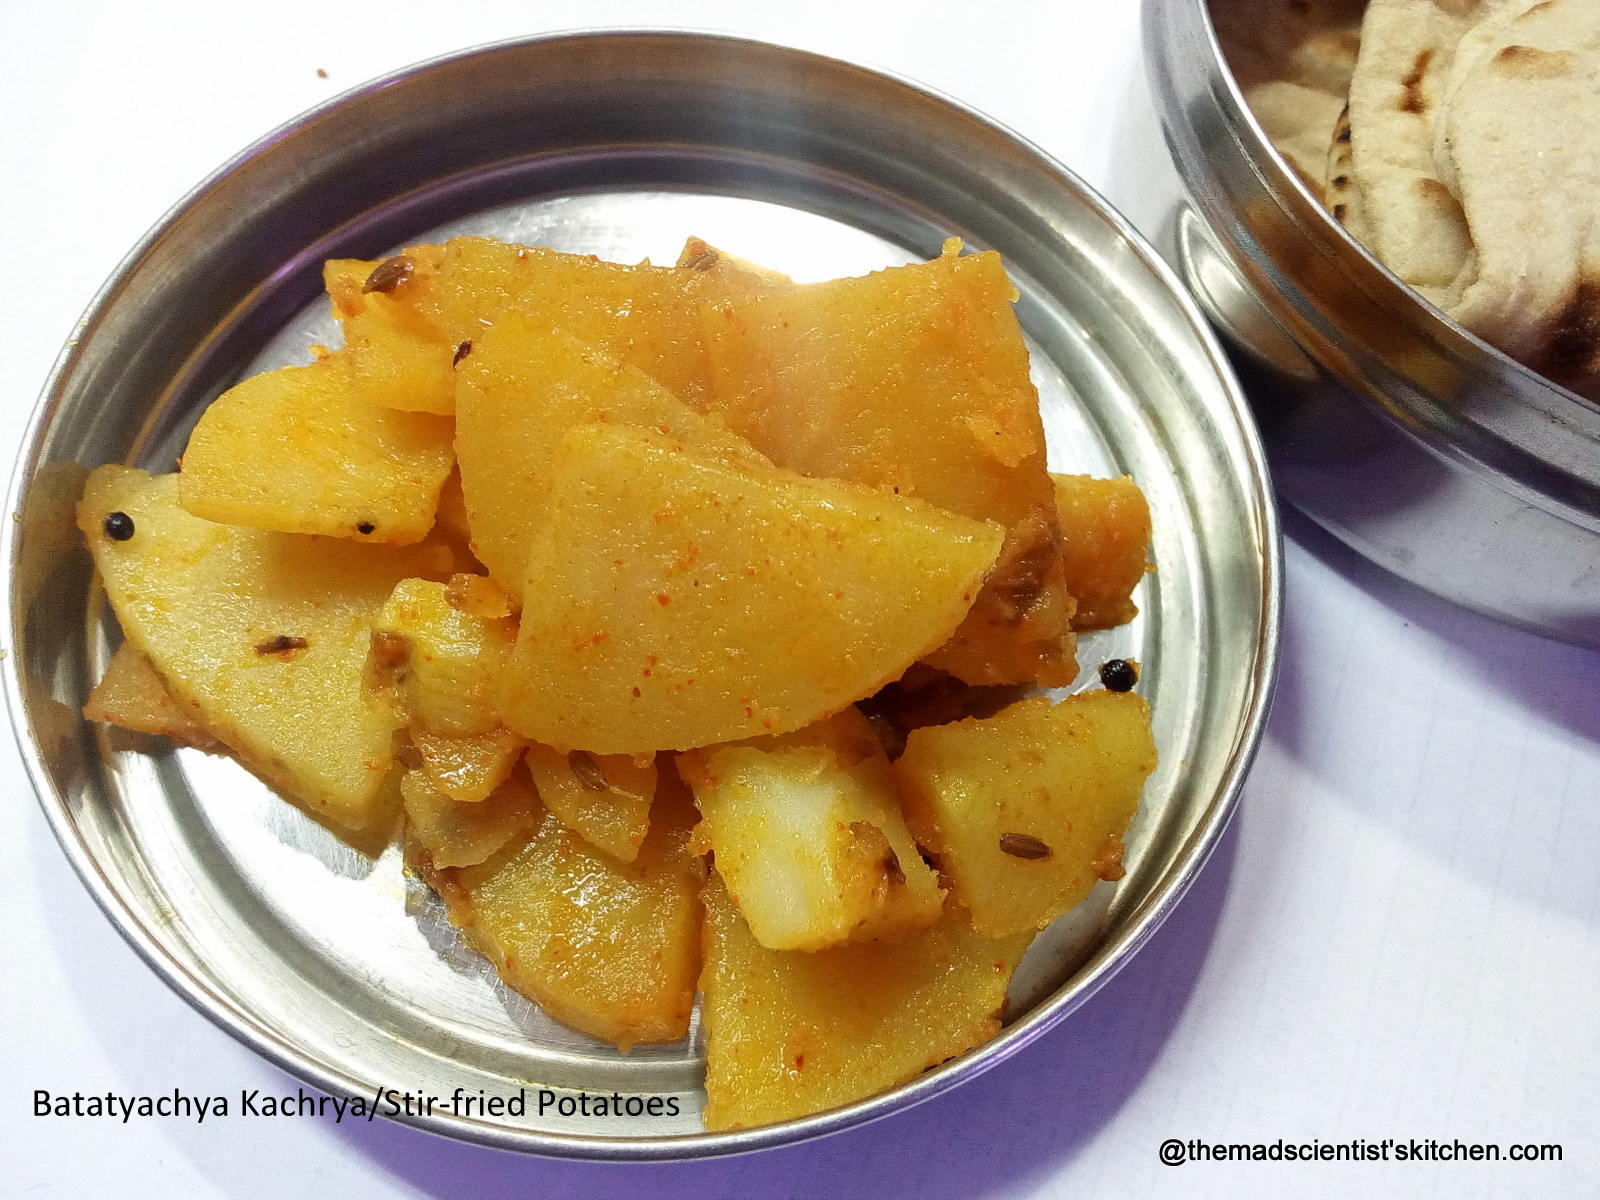 Batatyachya Kachrya/Stir-fried Potatoes